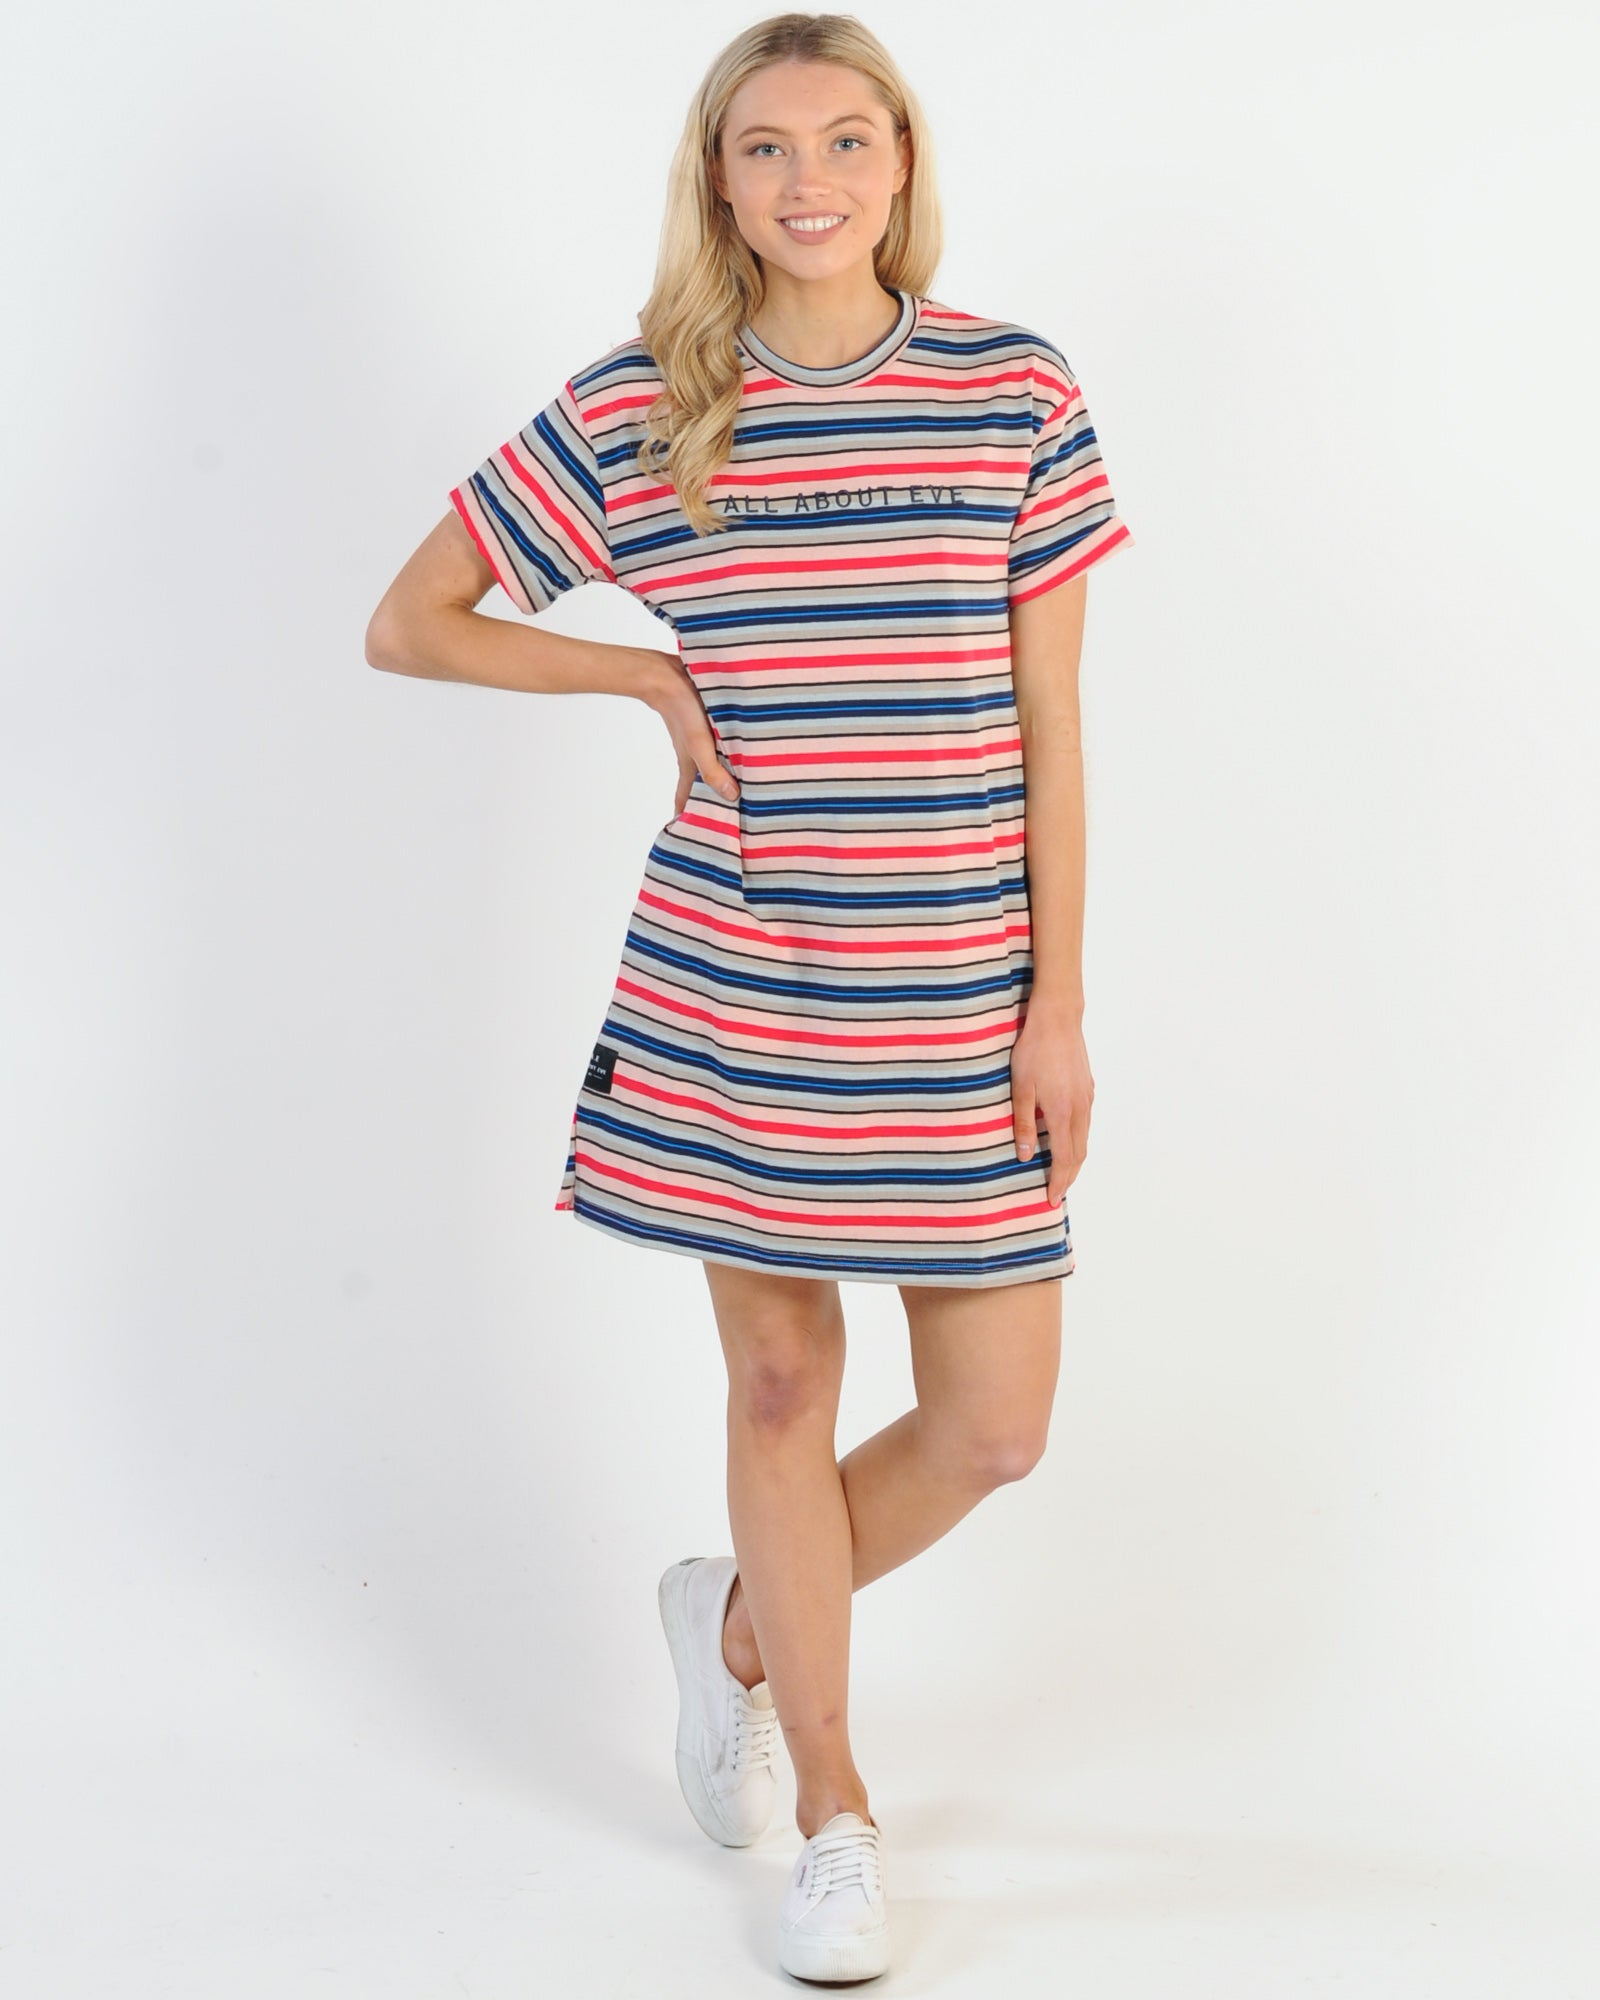 All About Eve Stripes For Days Tee Dress - Yarn Dyed Stripe